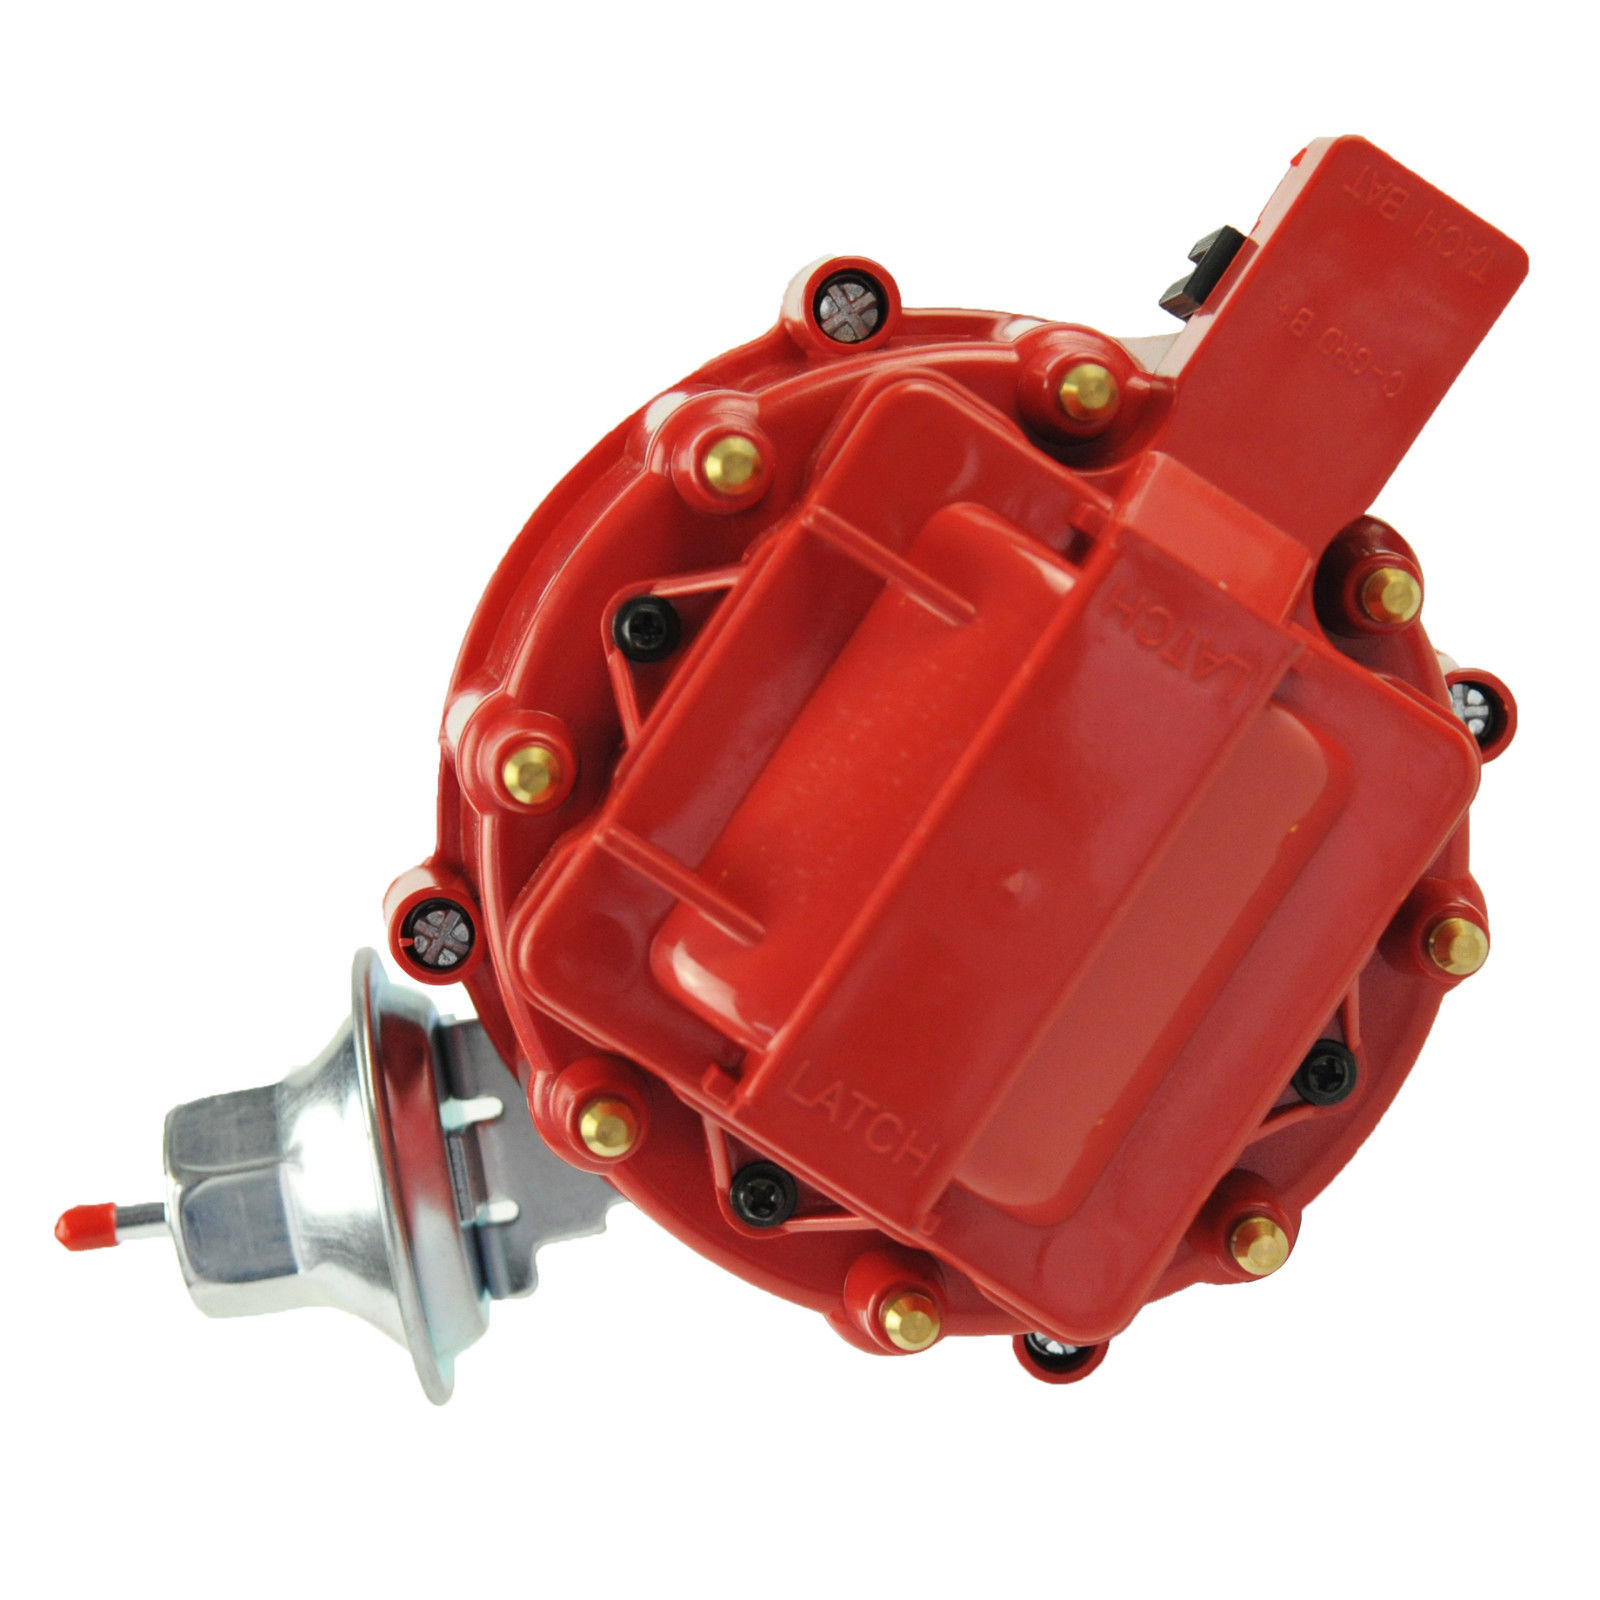 350 Engine Distributor Olds 403 Wiring Diagram Ignition For Oldsmobile Hei Oe Rhei Pe In Distributors Parts 1600x1600